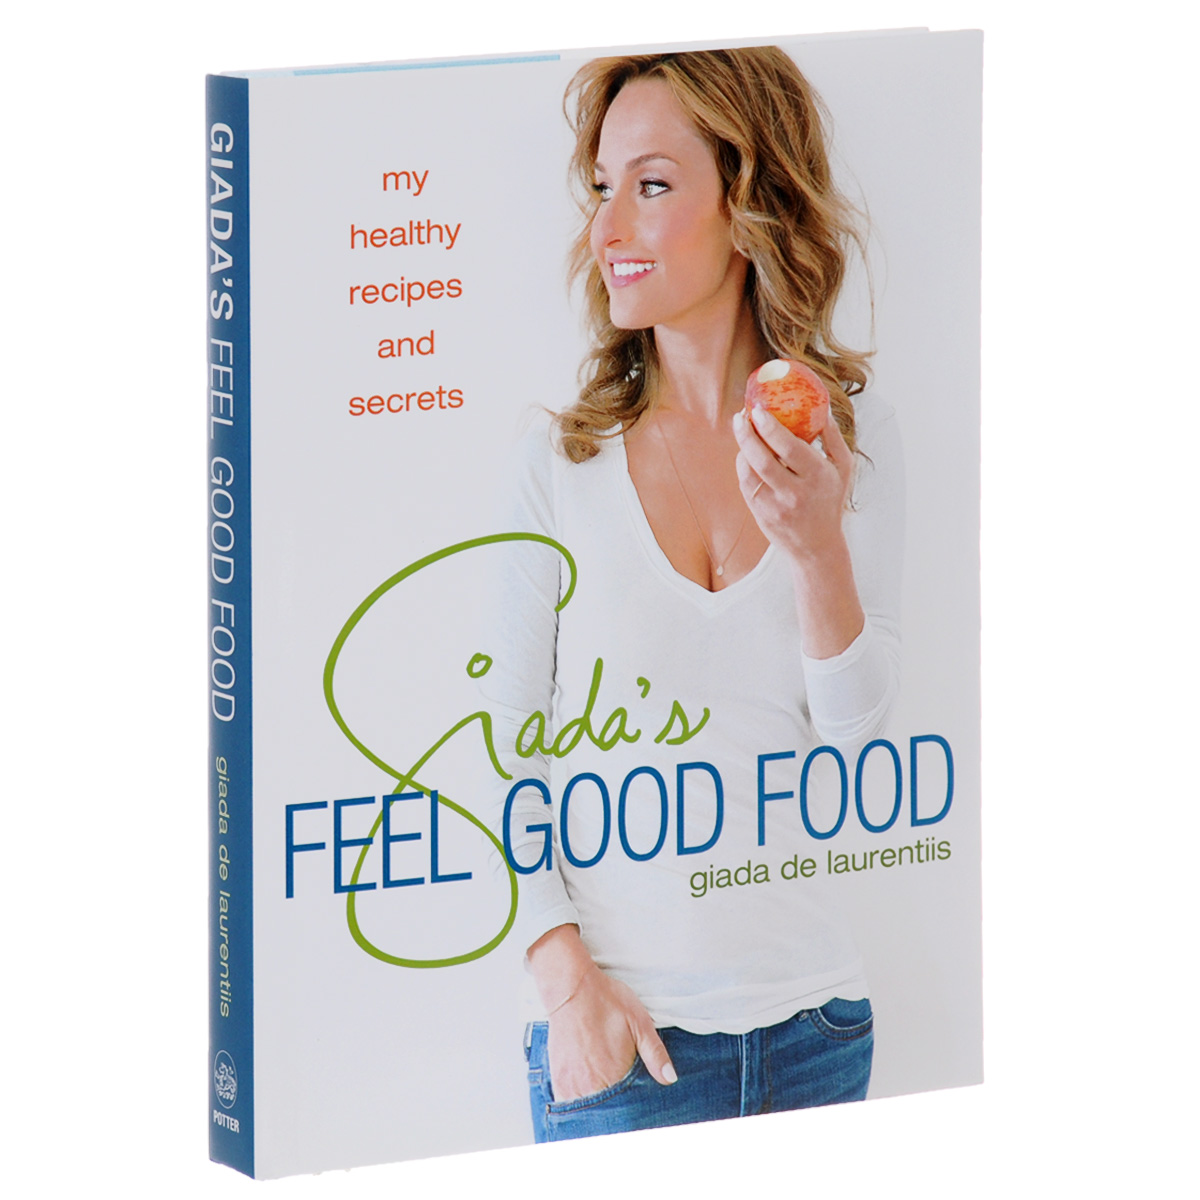 Giadas's Feel Good Food: My Healthy Recipes and Secrets healthy and beautiful from head to toe